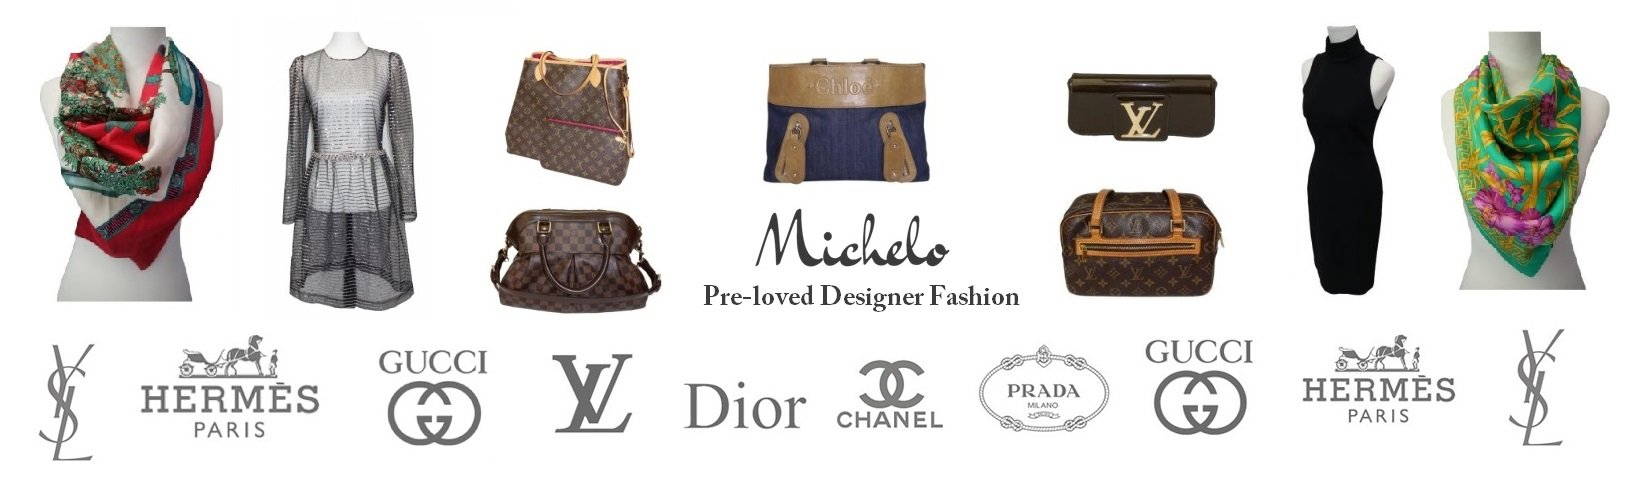 Michelo Pre-loved Second Hand Designer Clothes